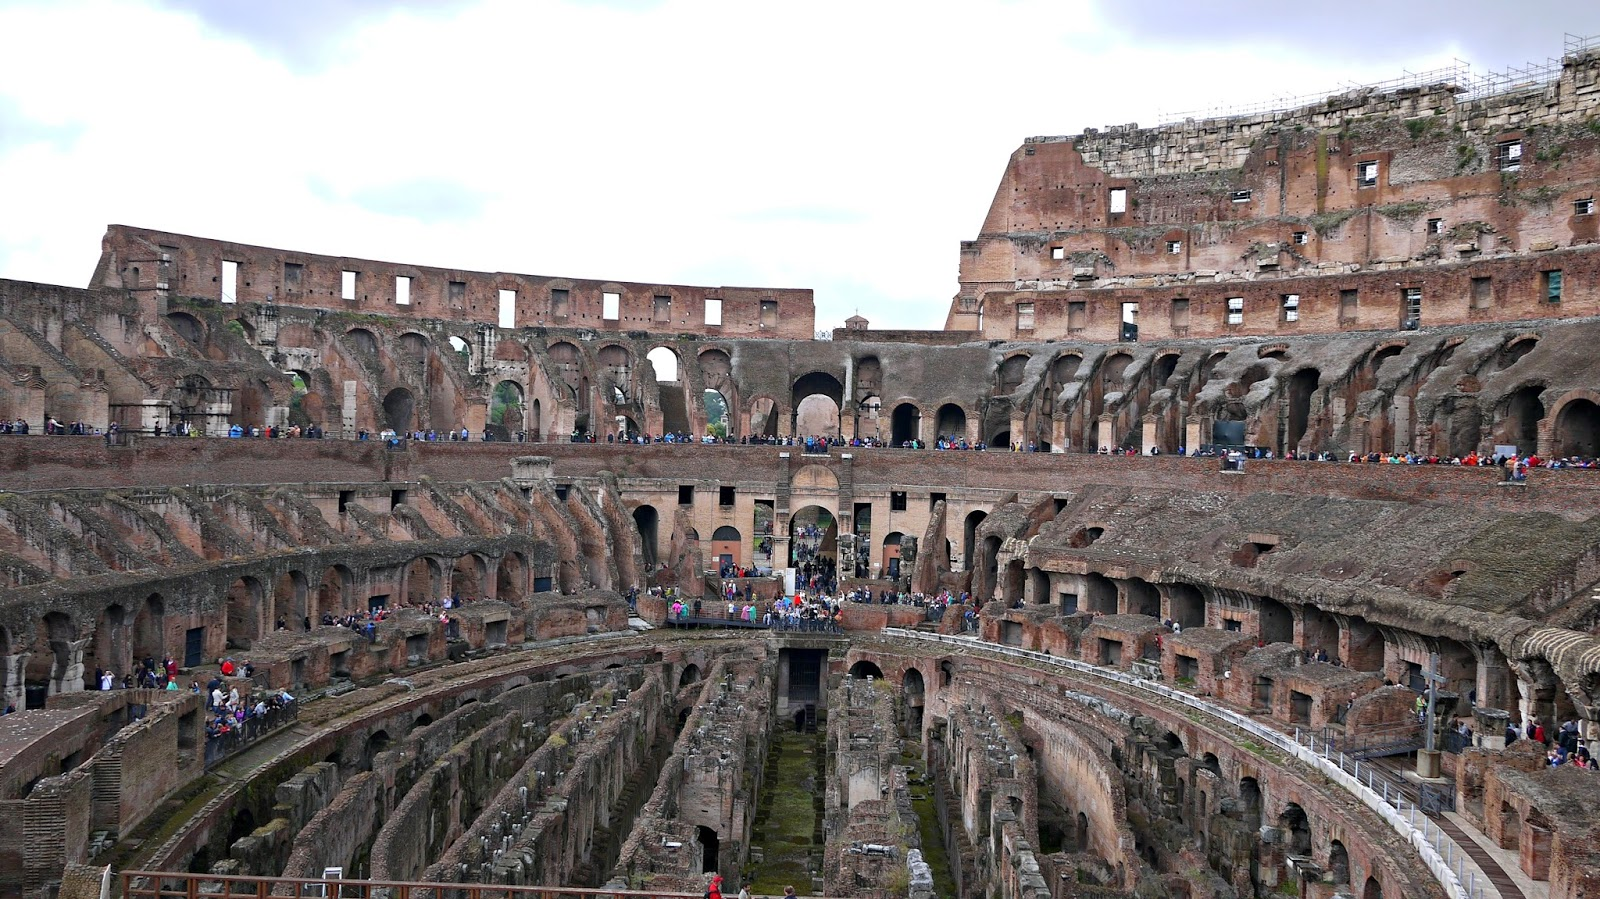 Inside of The Colosseum in Rome Italy